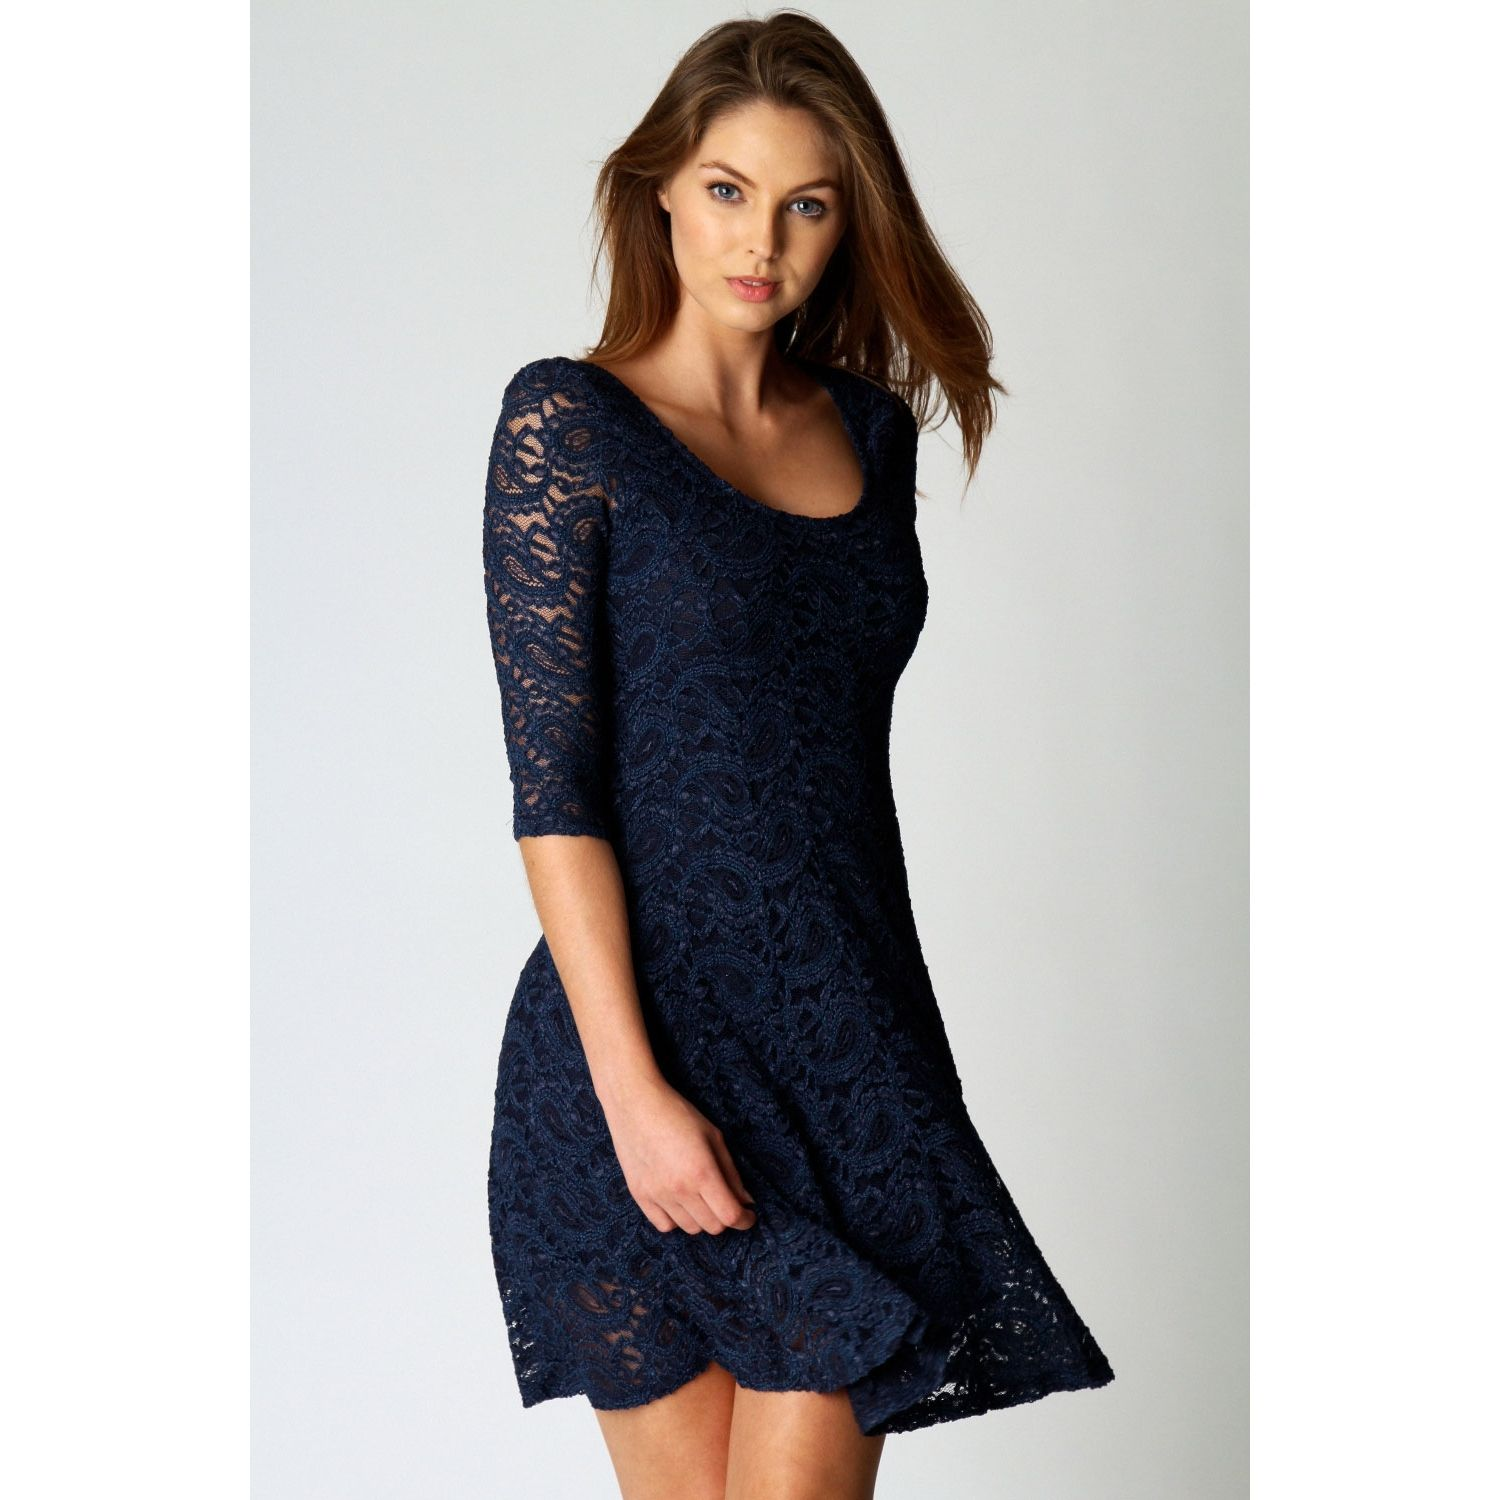 aafea65ff560 Boohoo Women s Ivy All Over Lace 3 4 Sleeve Fit + Flare Dress (Navy Blue)